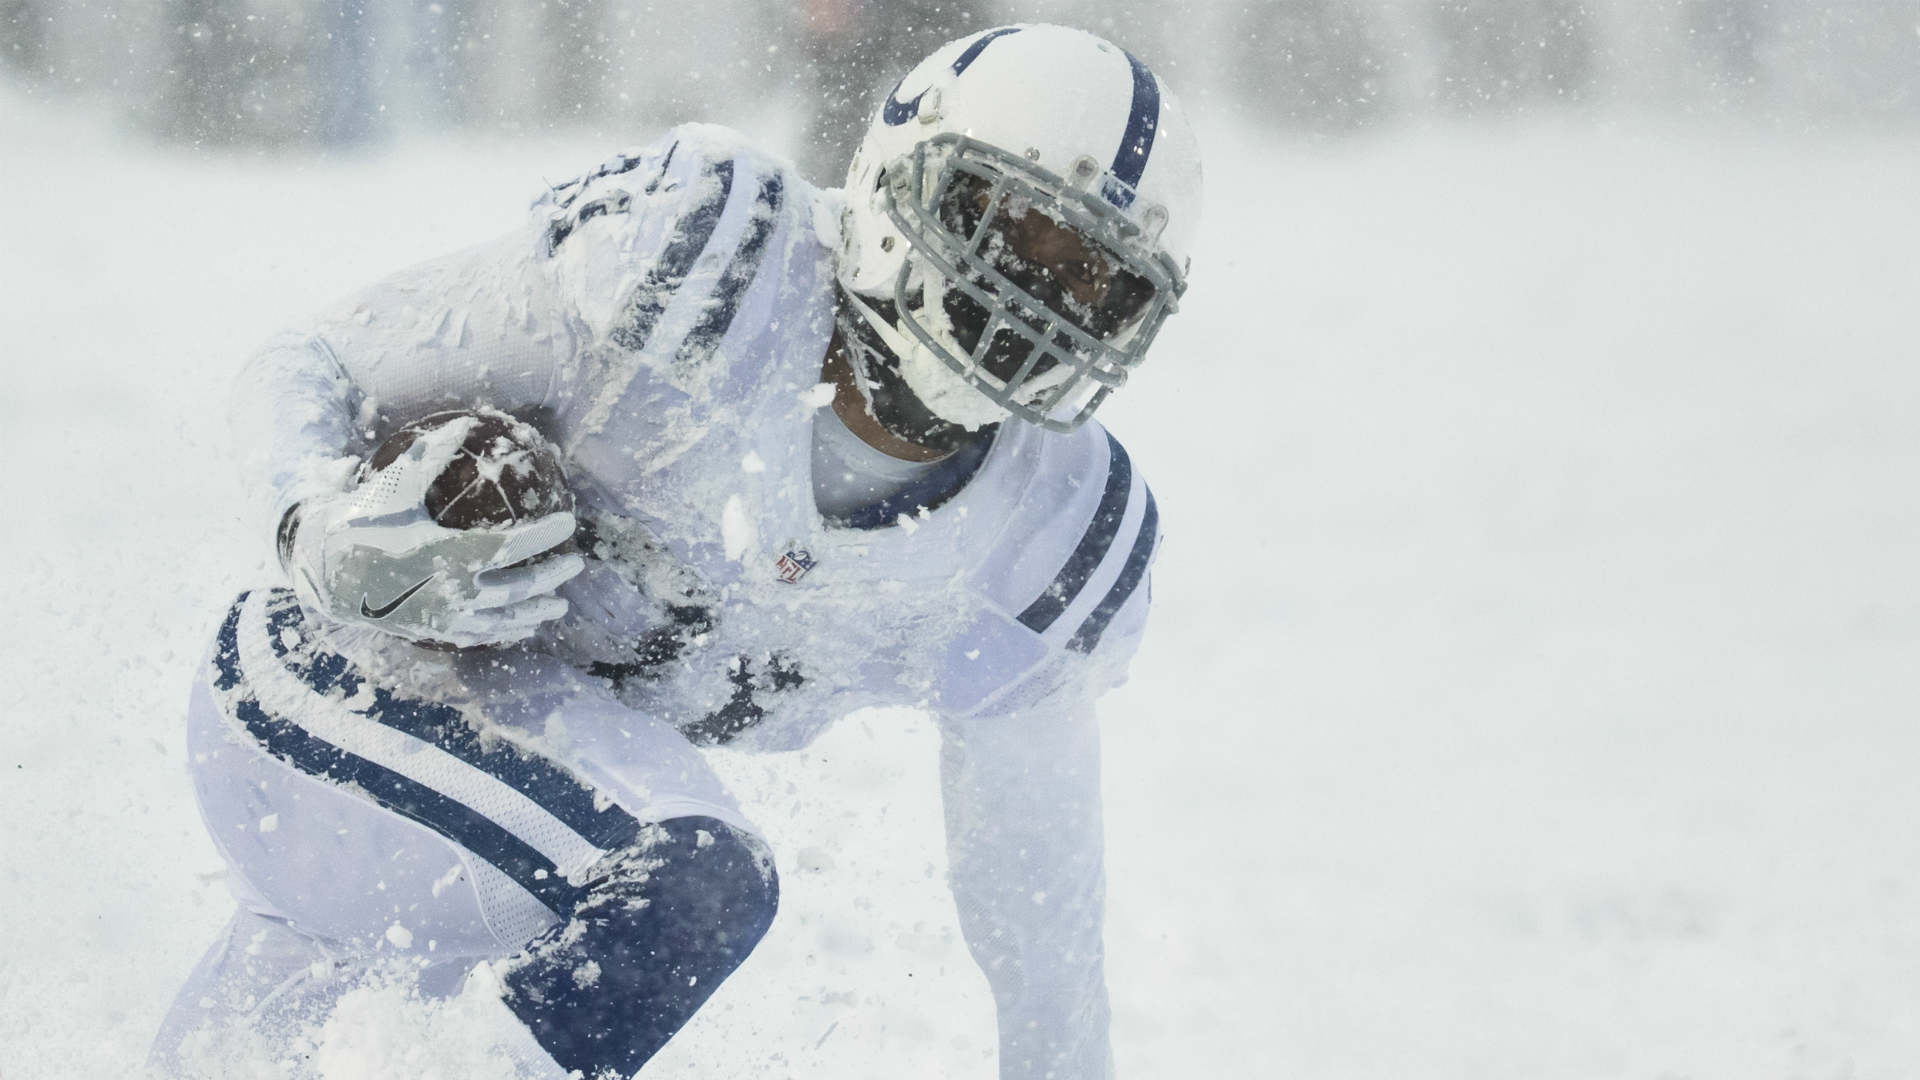 Colts' all-white uniforms in the snow made it impossible for Broncos to review film